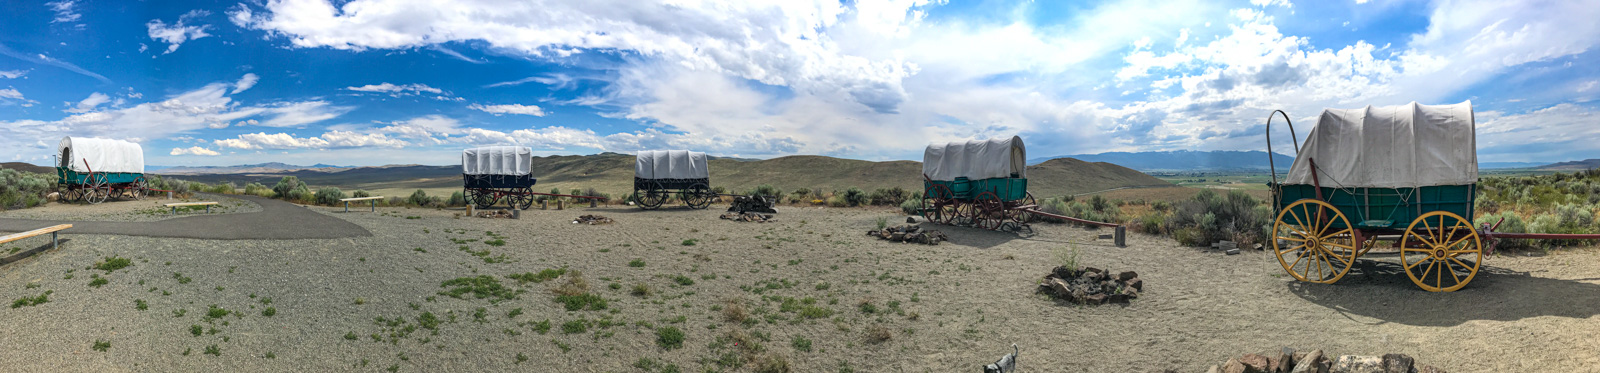 Wagons at the Oregon Trail Historic Site, Baker City